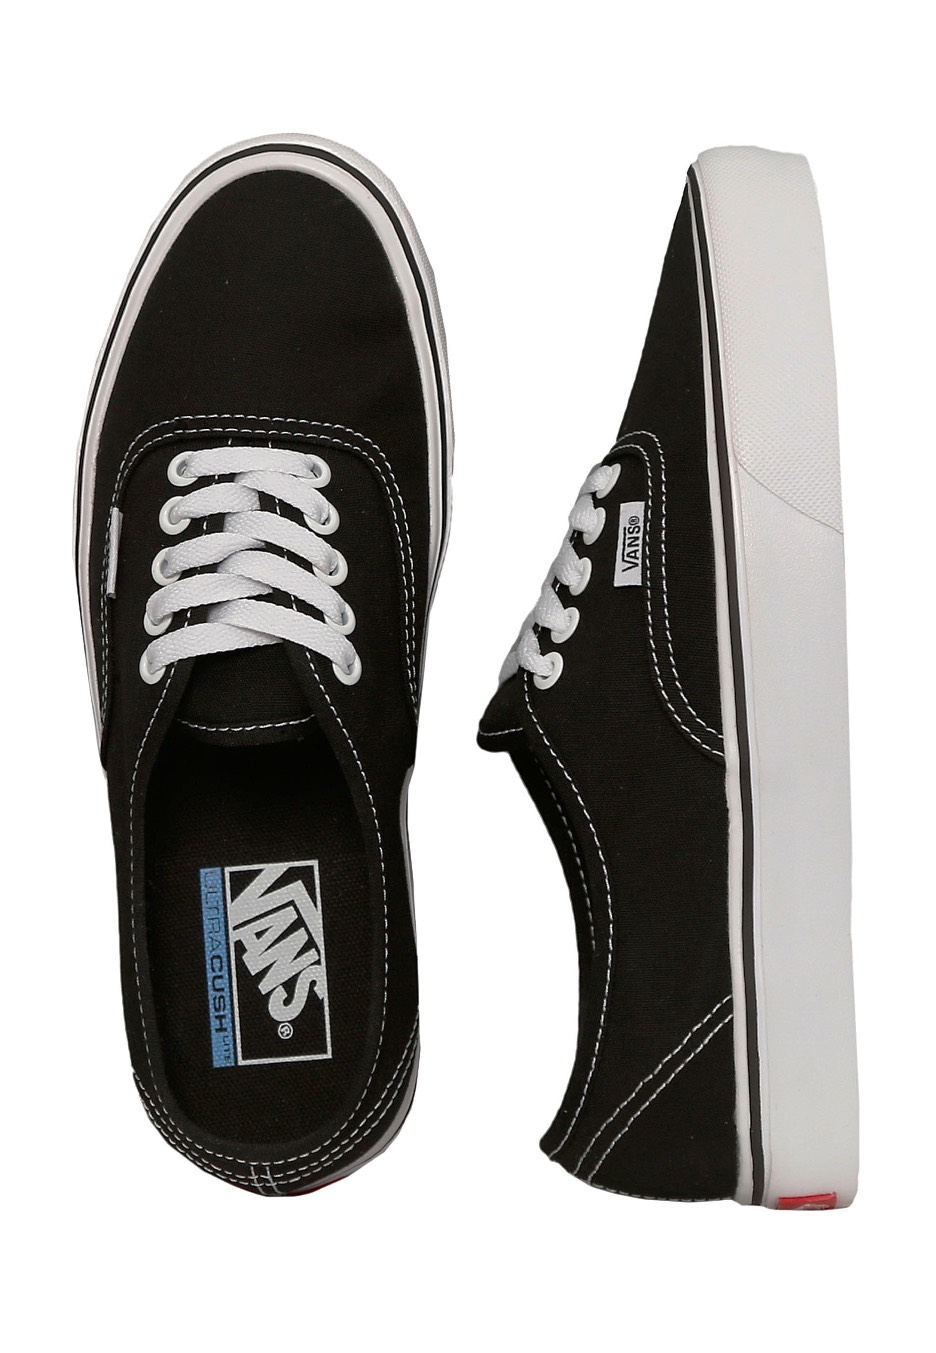 30eb881b822c Vans - Authentic Lite Canvas Black White - Girl Shoes - Impericon.com  Worldwide